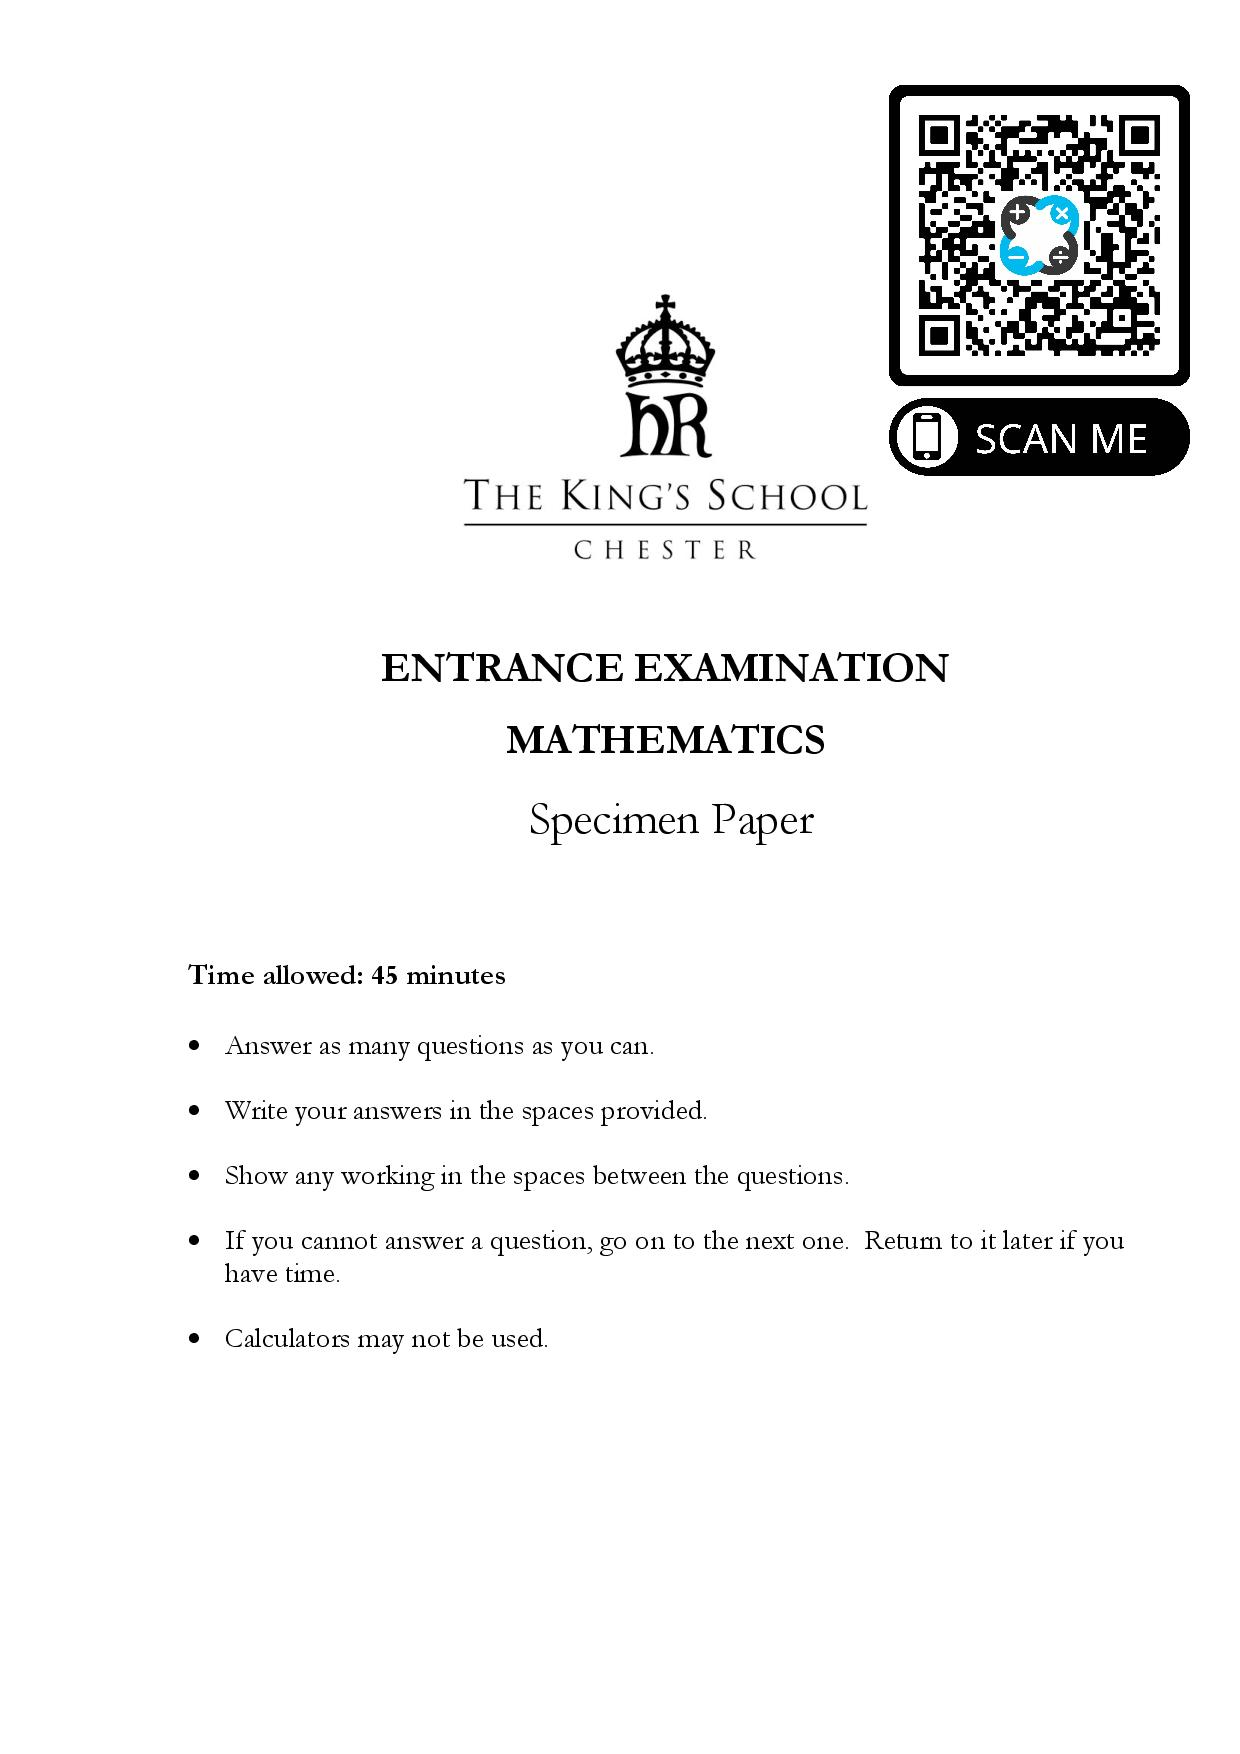 The Kings School Chester ENTRANCE EXAMINATION MATHEMATICS Specimen Paper Questions Paper page 001